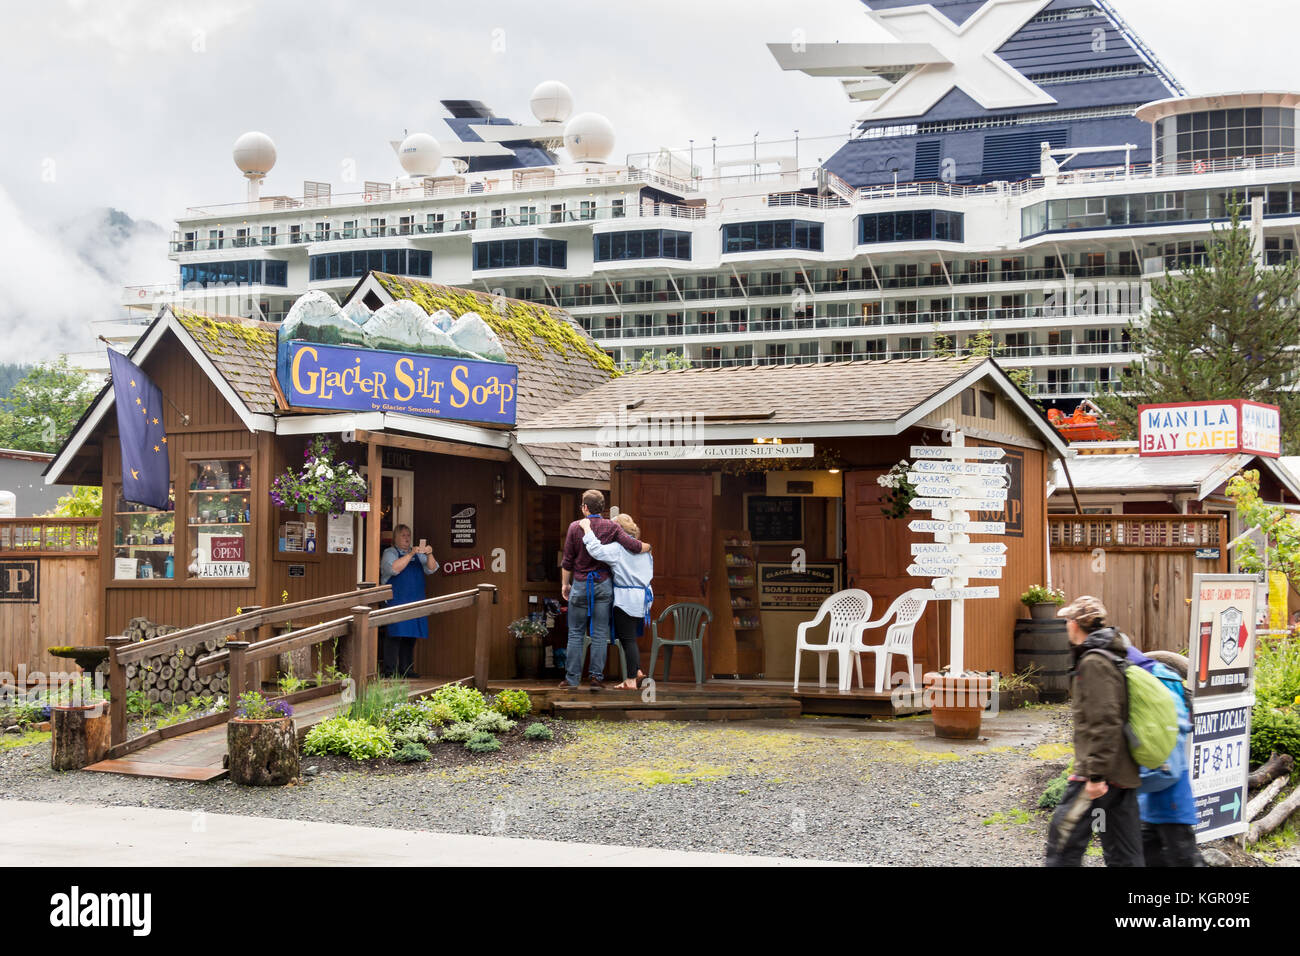 Juneau, Alaska, USA - July 28th, 2017: Employees of the Glacier Silt Soap shop are taking photos with a mobile outside - Stock Image